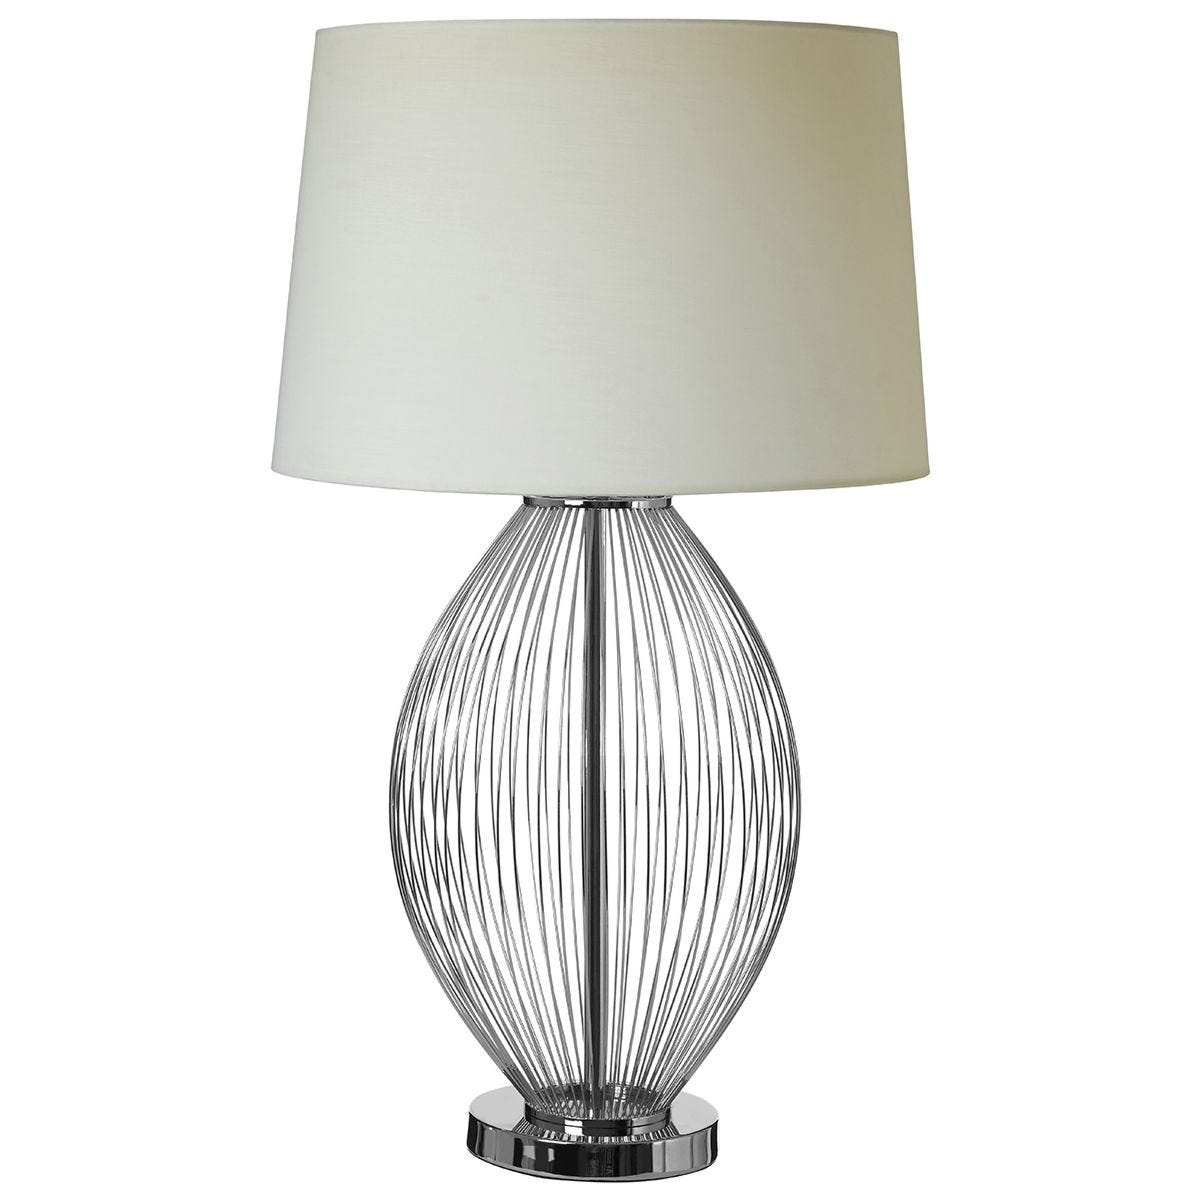 Premier Housewares Lucent Table Lamp with Chrome Base & Linen Shade